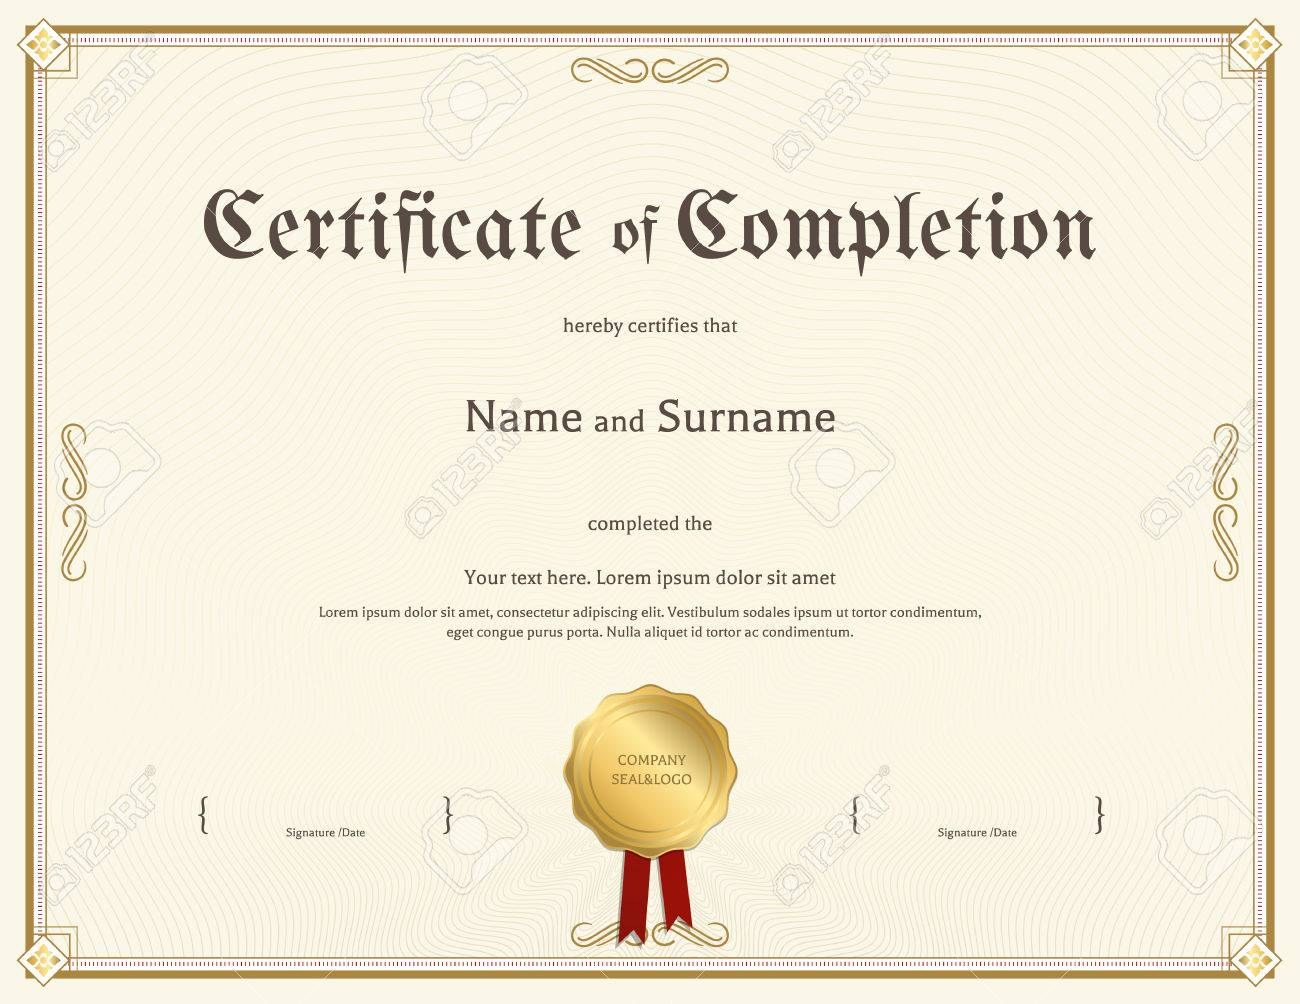 Certificate Of Completion Template In Vintage Theme Royalty Free ...